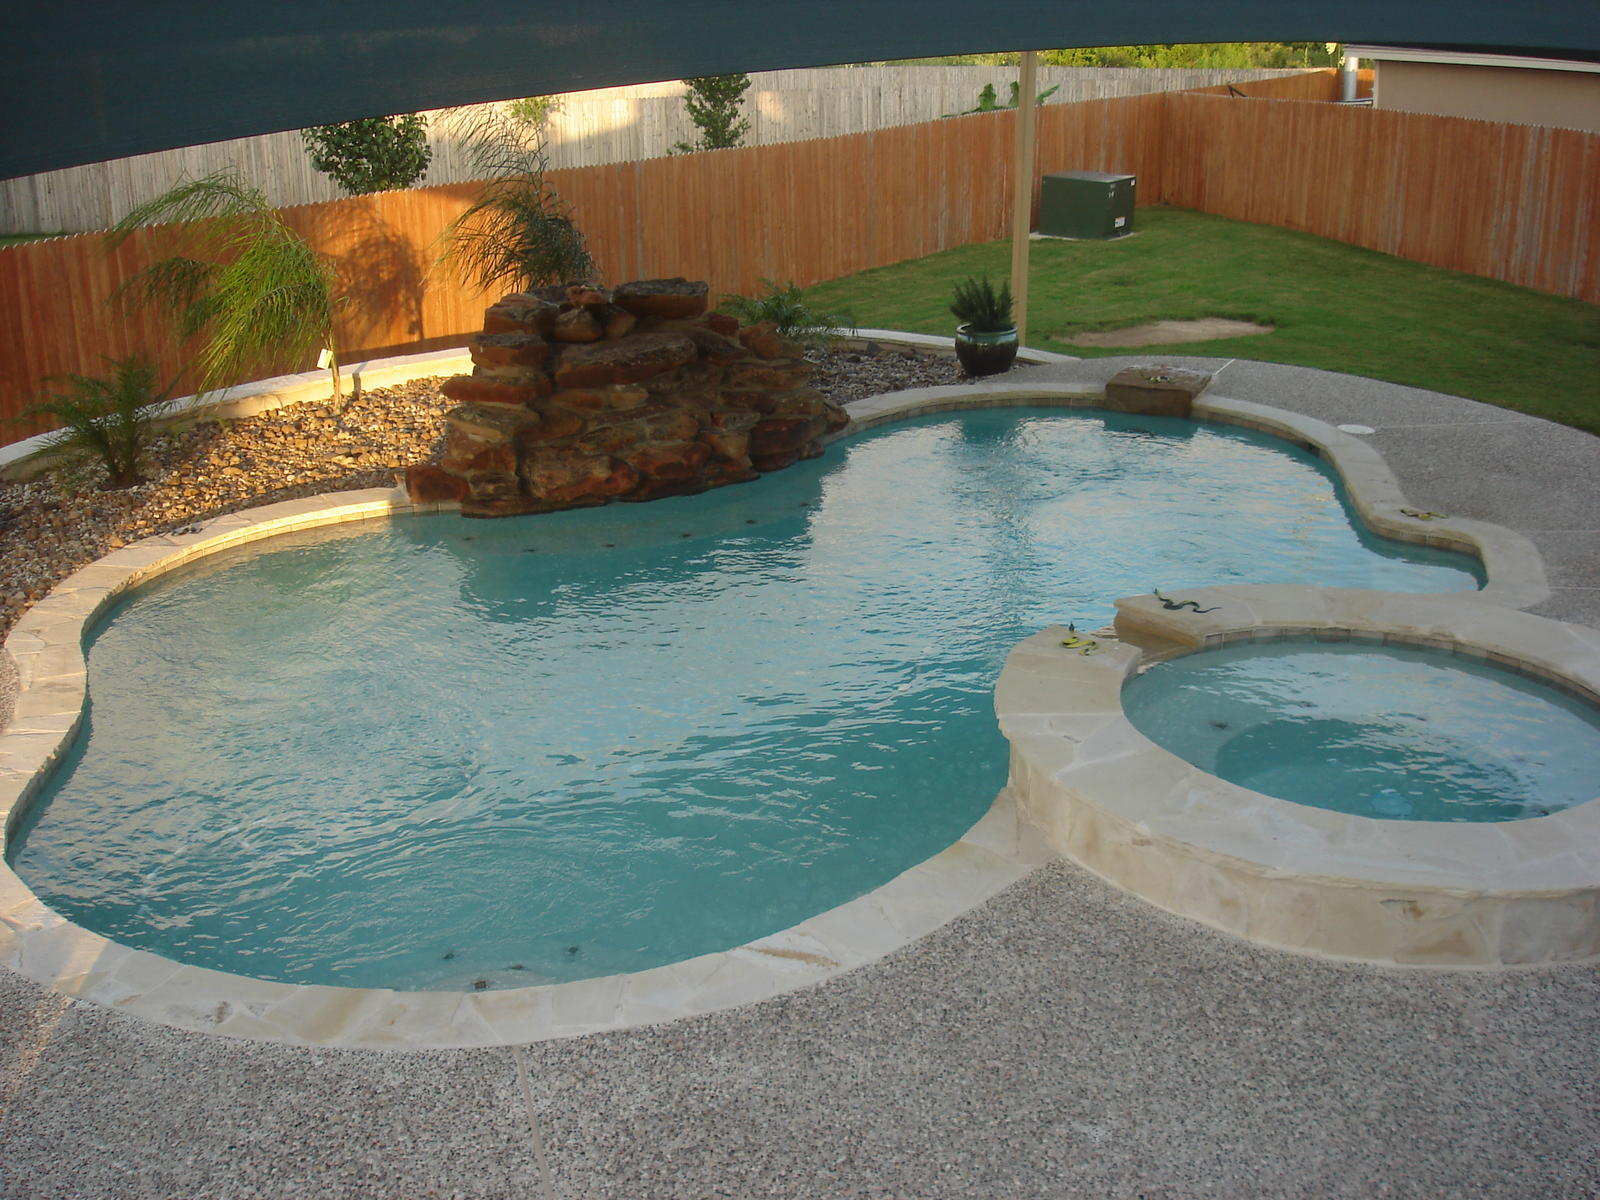 Swimming Pool Companies : Recommendation on swimming pool companies san antonio